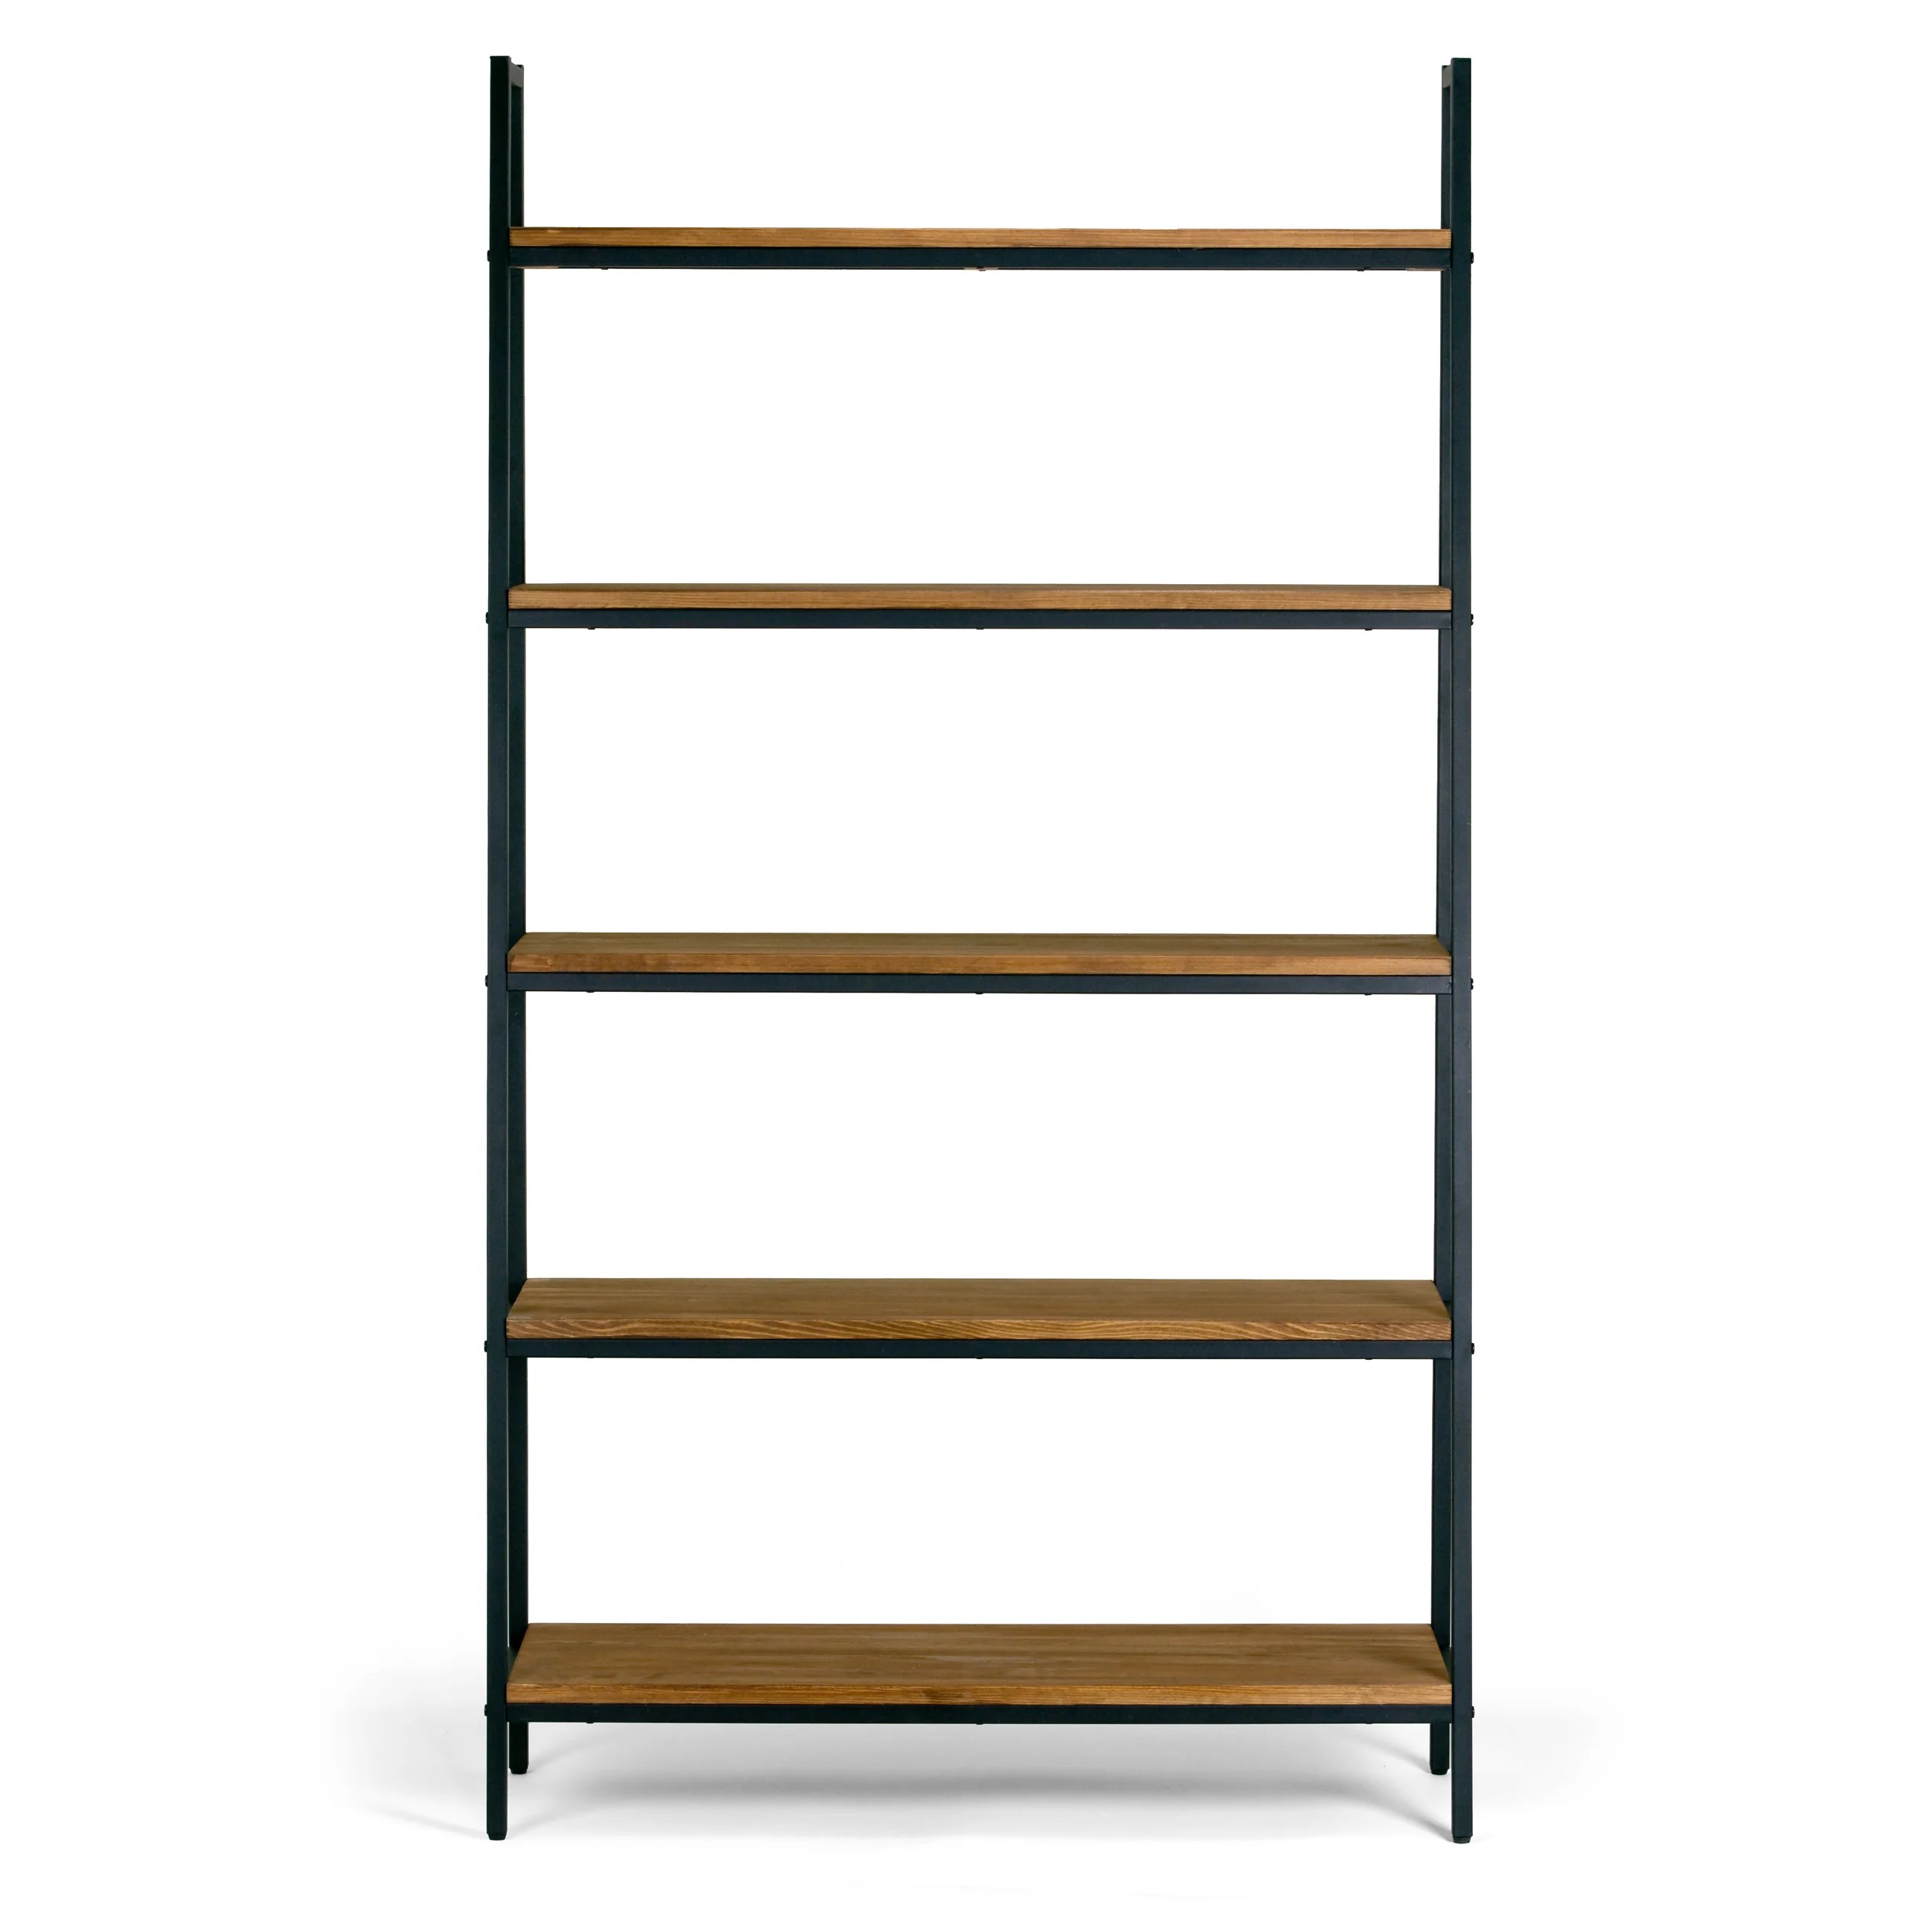 Etagere Cd But Ailis Brown Pine Wood Metal Frame 71 5 Inch 5 Shelf Etagere Bookcase And Media Tower